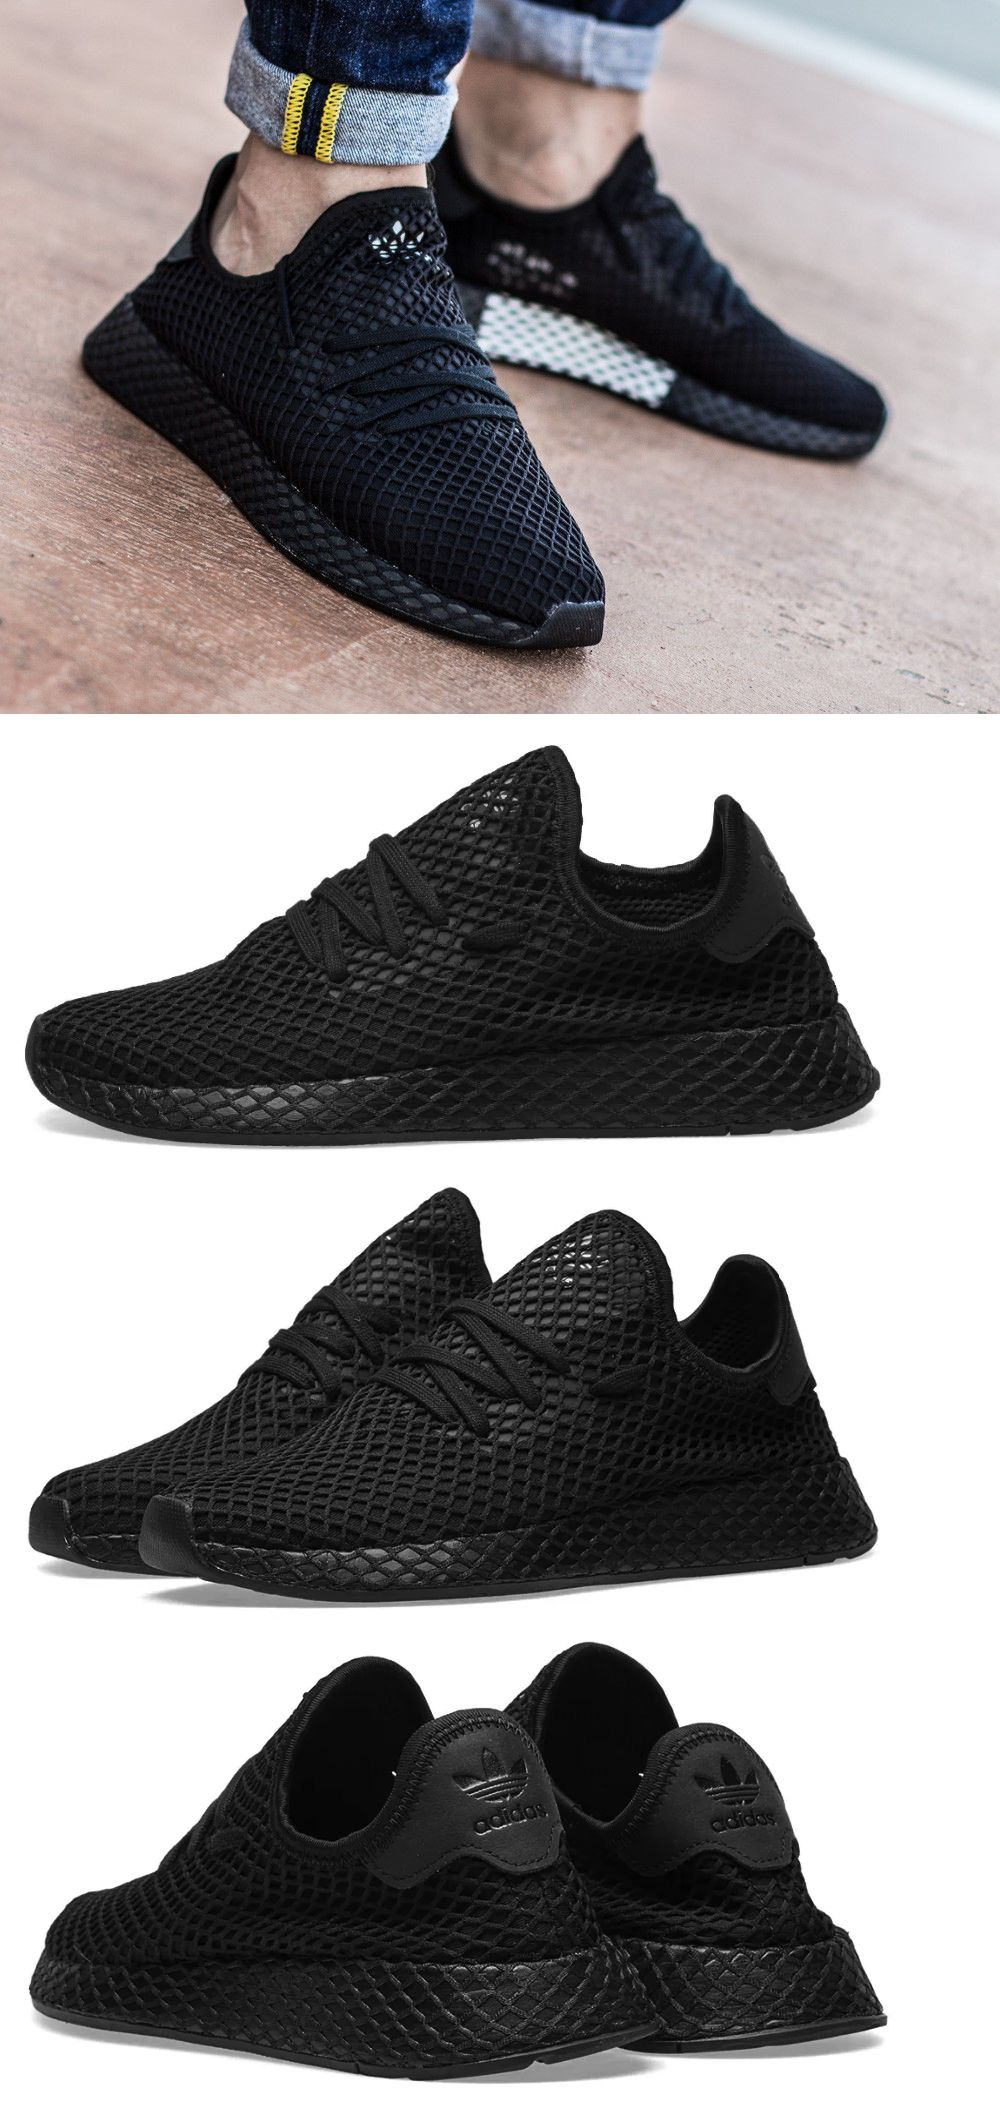 buy popular d0327 ba4e2 Athletic Shoes 15709  New Adidas Originals Deerupt Runner Sneaker Mens  Triple Black White All Sz -  BUY IT NOW ONLY   69.99 on  eBay  athletic   shoes ...